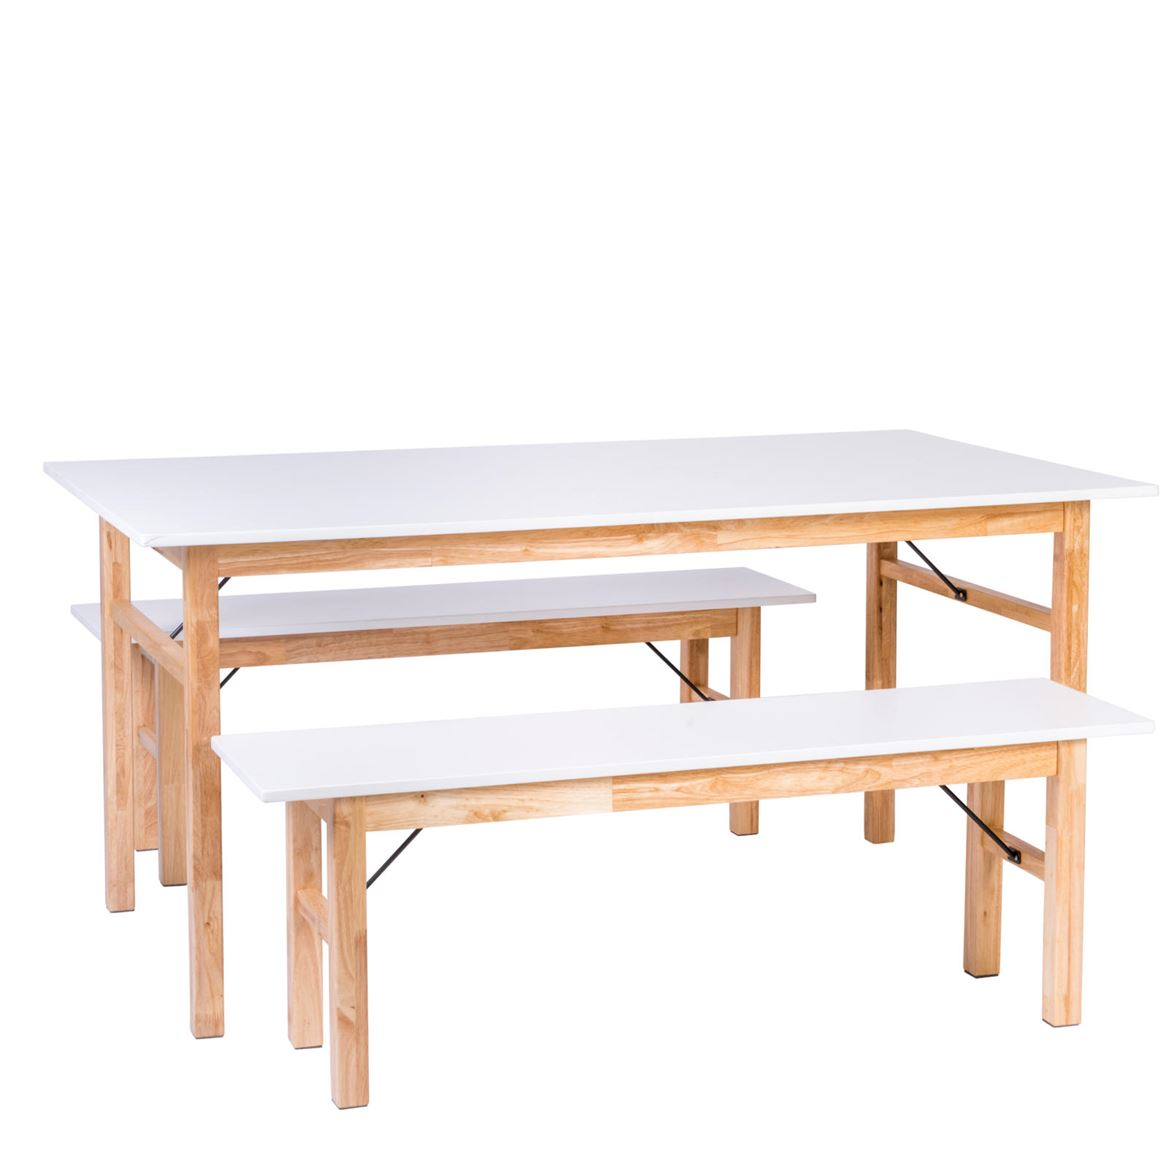 BIANCA Table blanc H 75 x Larg. 90 x Long. 160 cm_bianca-table-blanc-h-75-x-larg--90-x-long--160-cm